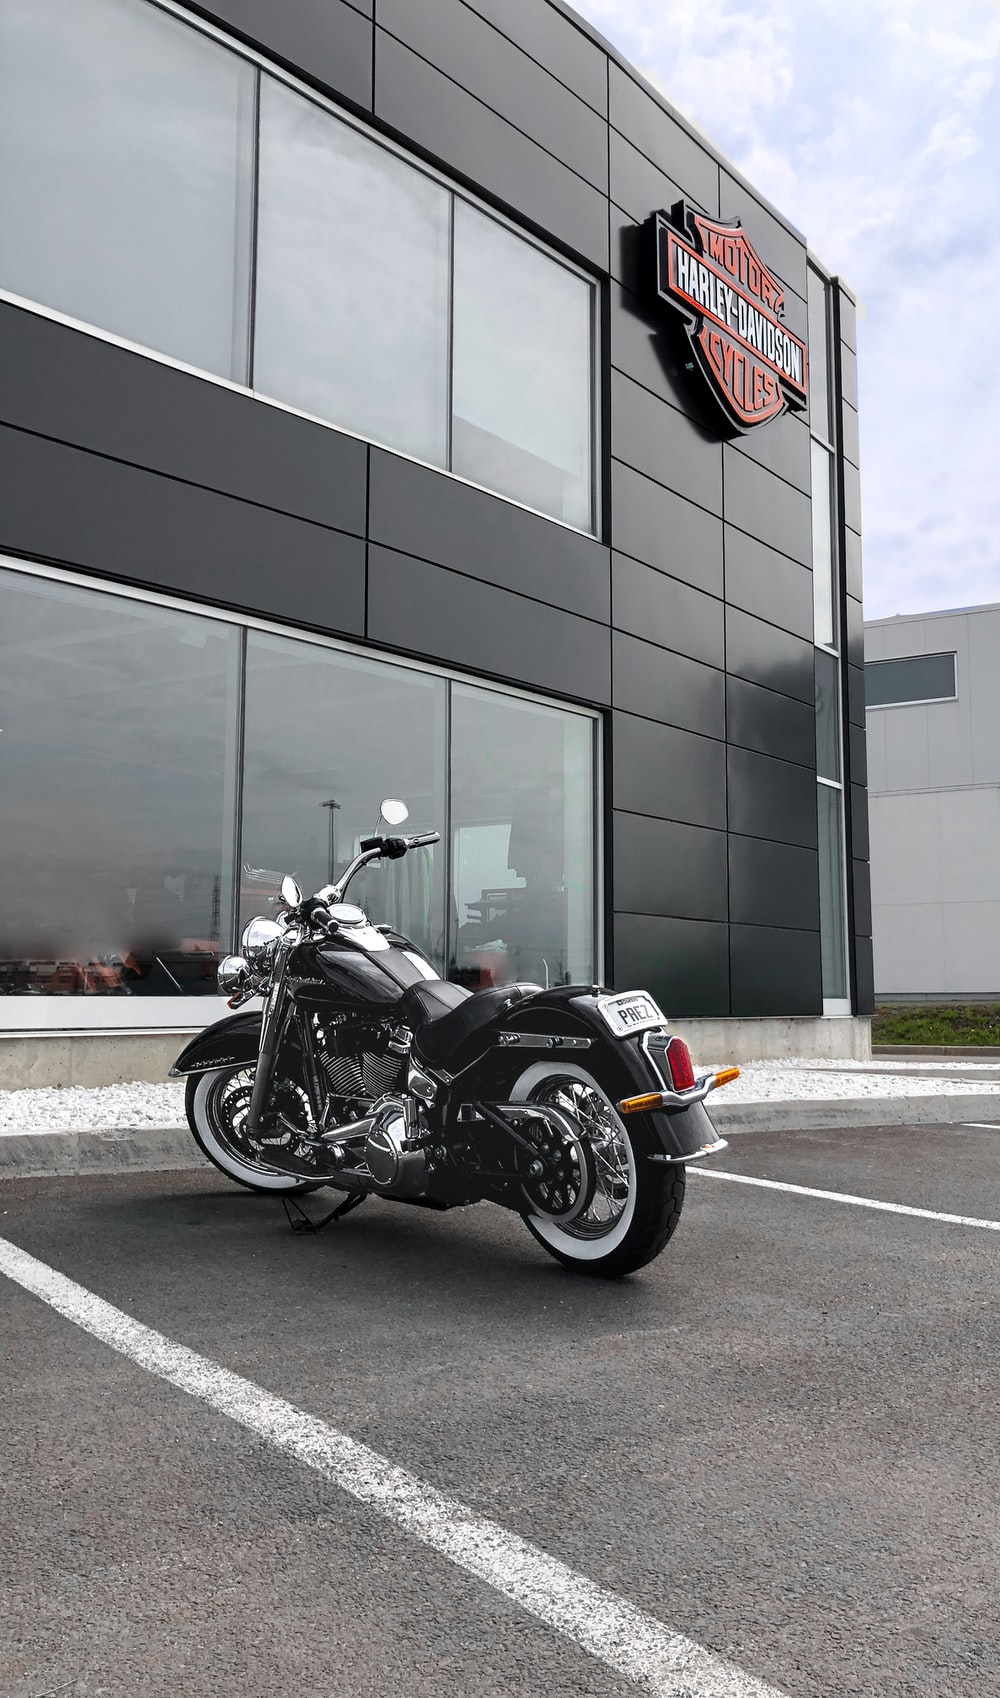 black cruiser motorcycle parked beside store